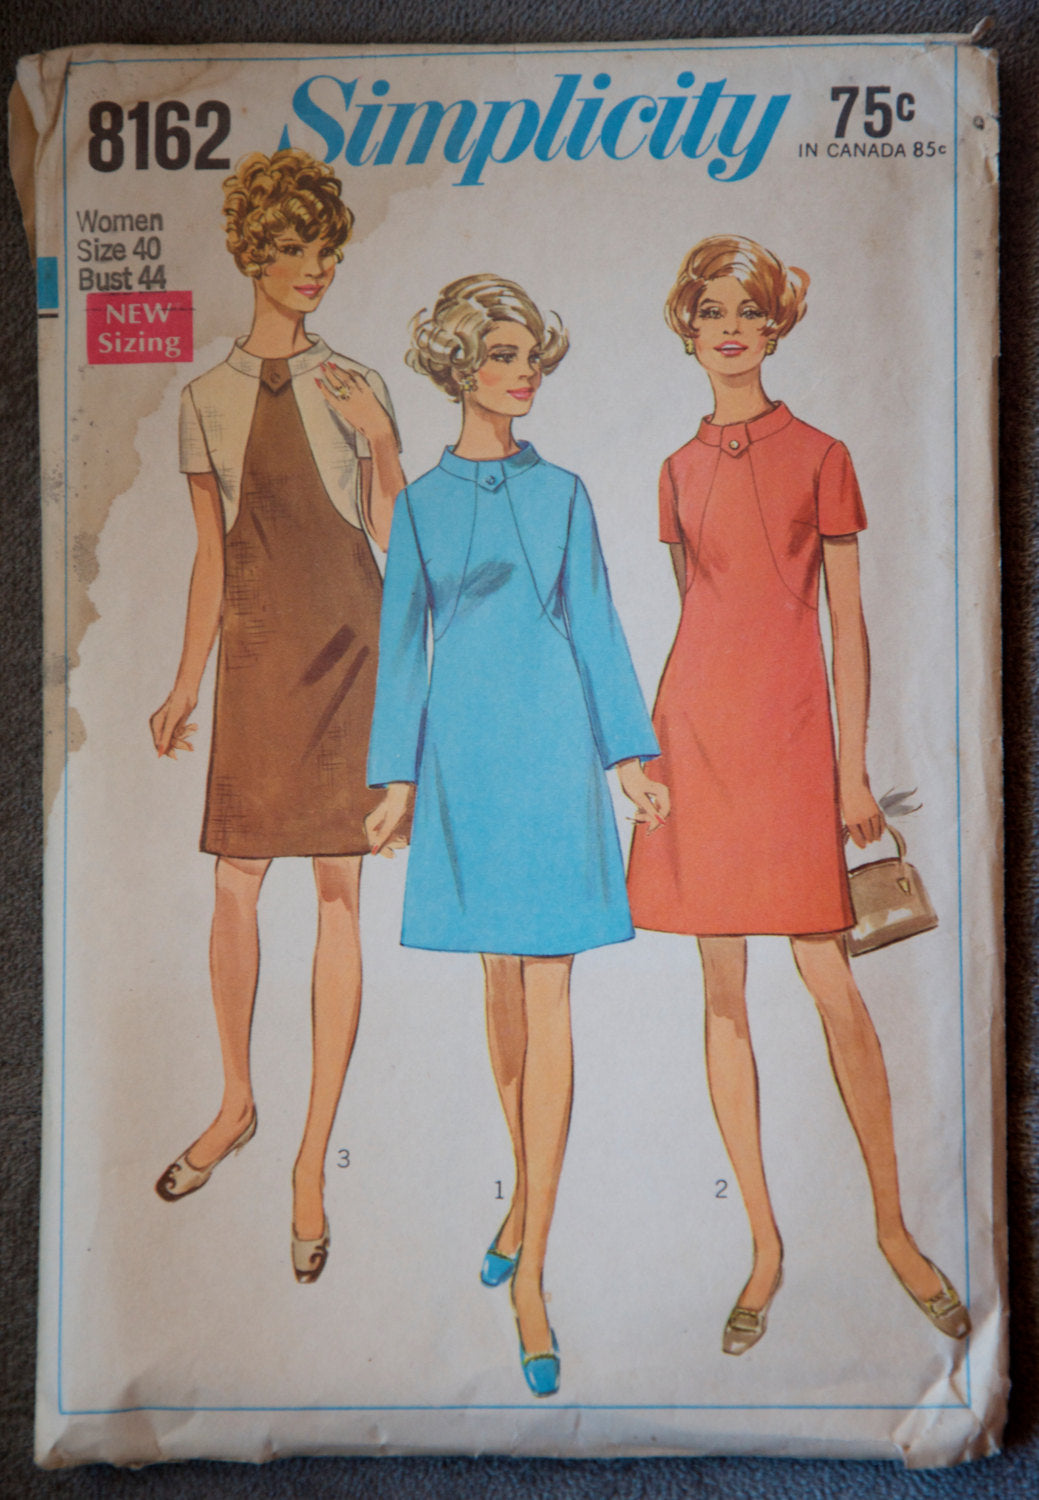 1960's Simplicity A-Line Dress pattern in two sleeve lengths - Bust 44